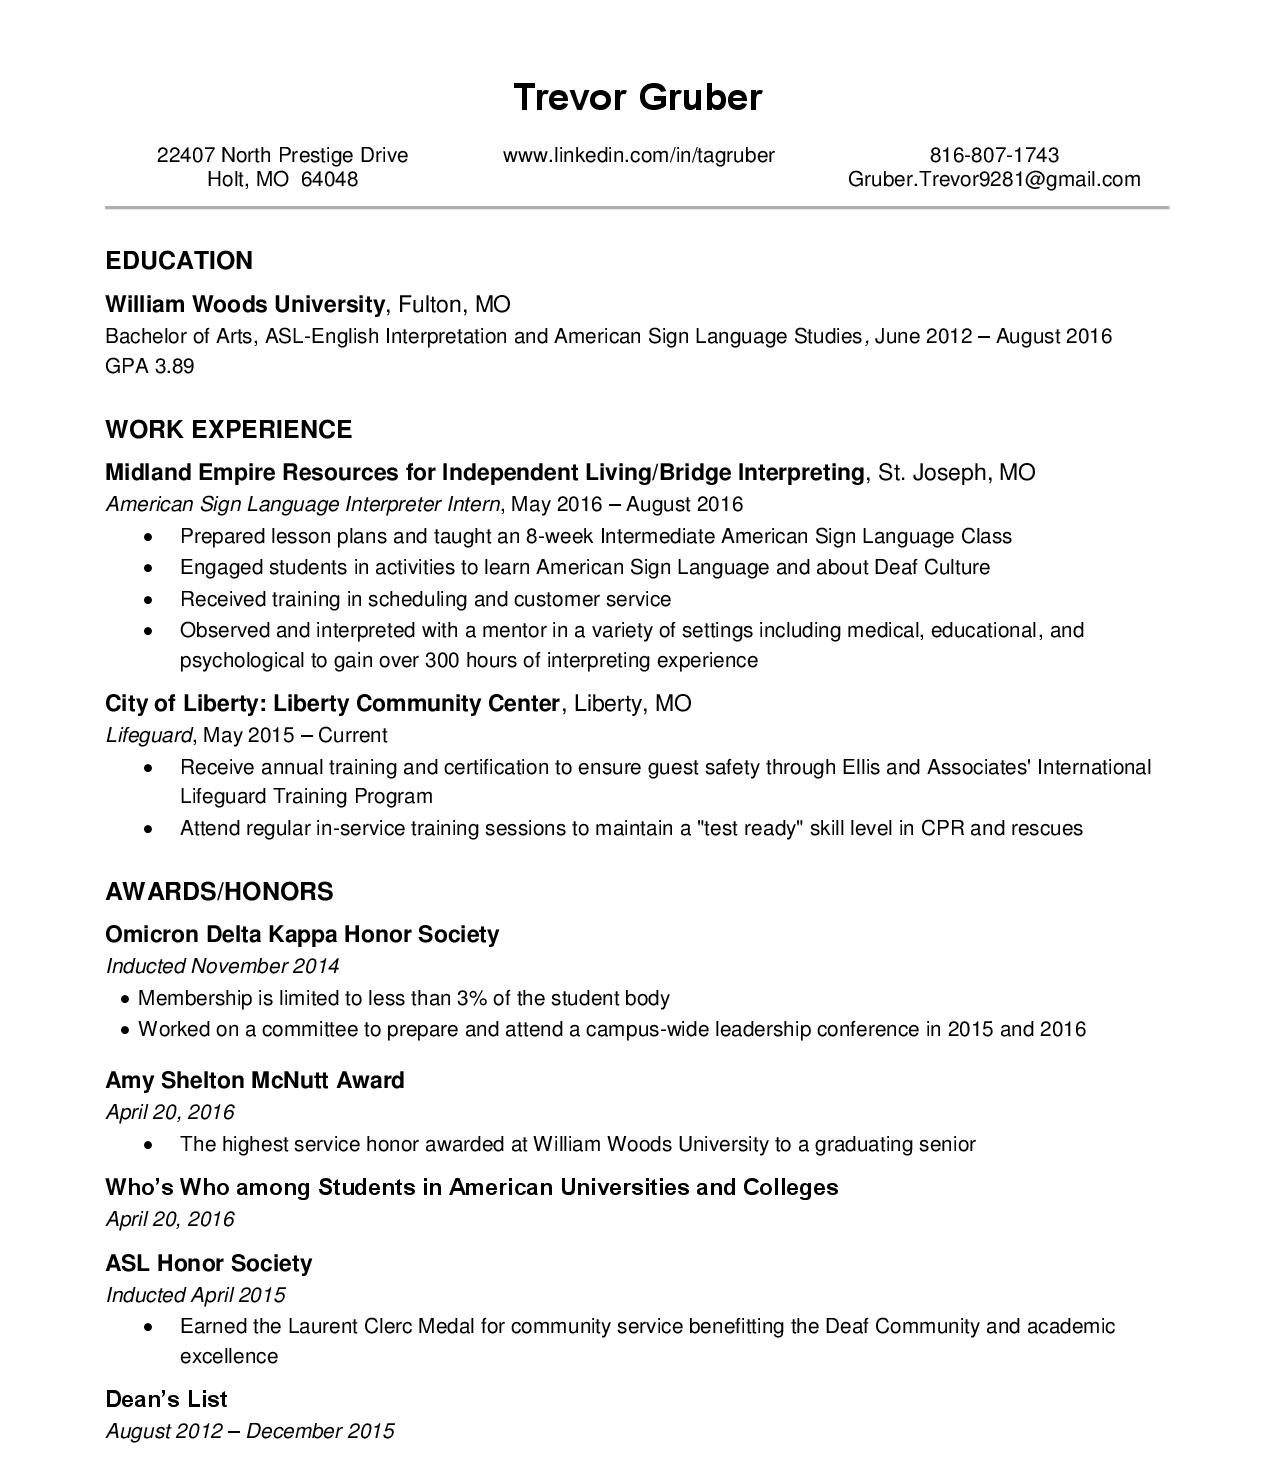 Resume and cover letter lesson plan